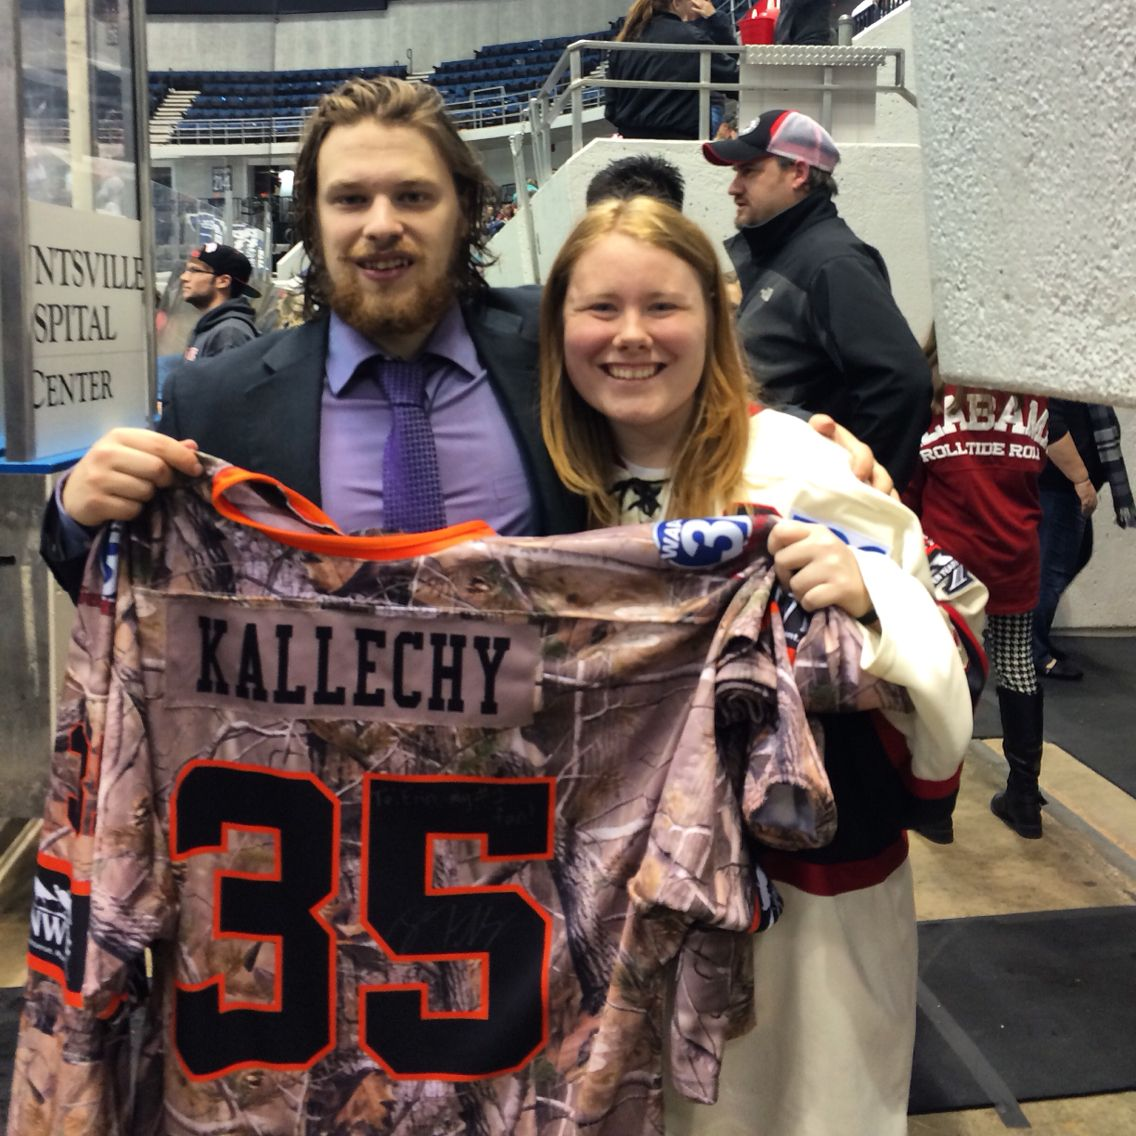 I finally got a Jesse Kallechy jersey! I ve wanted one of his jerseys since  last season. ❤ He signed it and it says